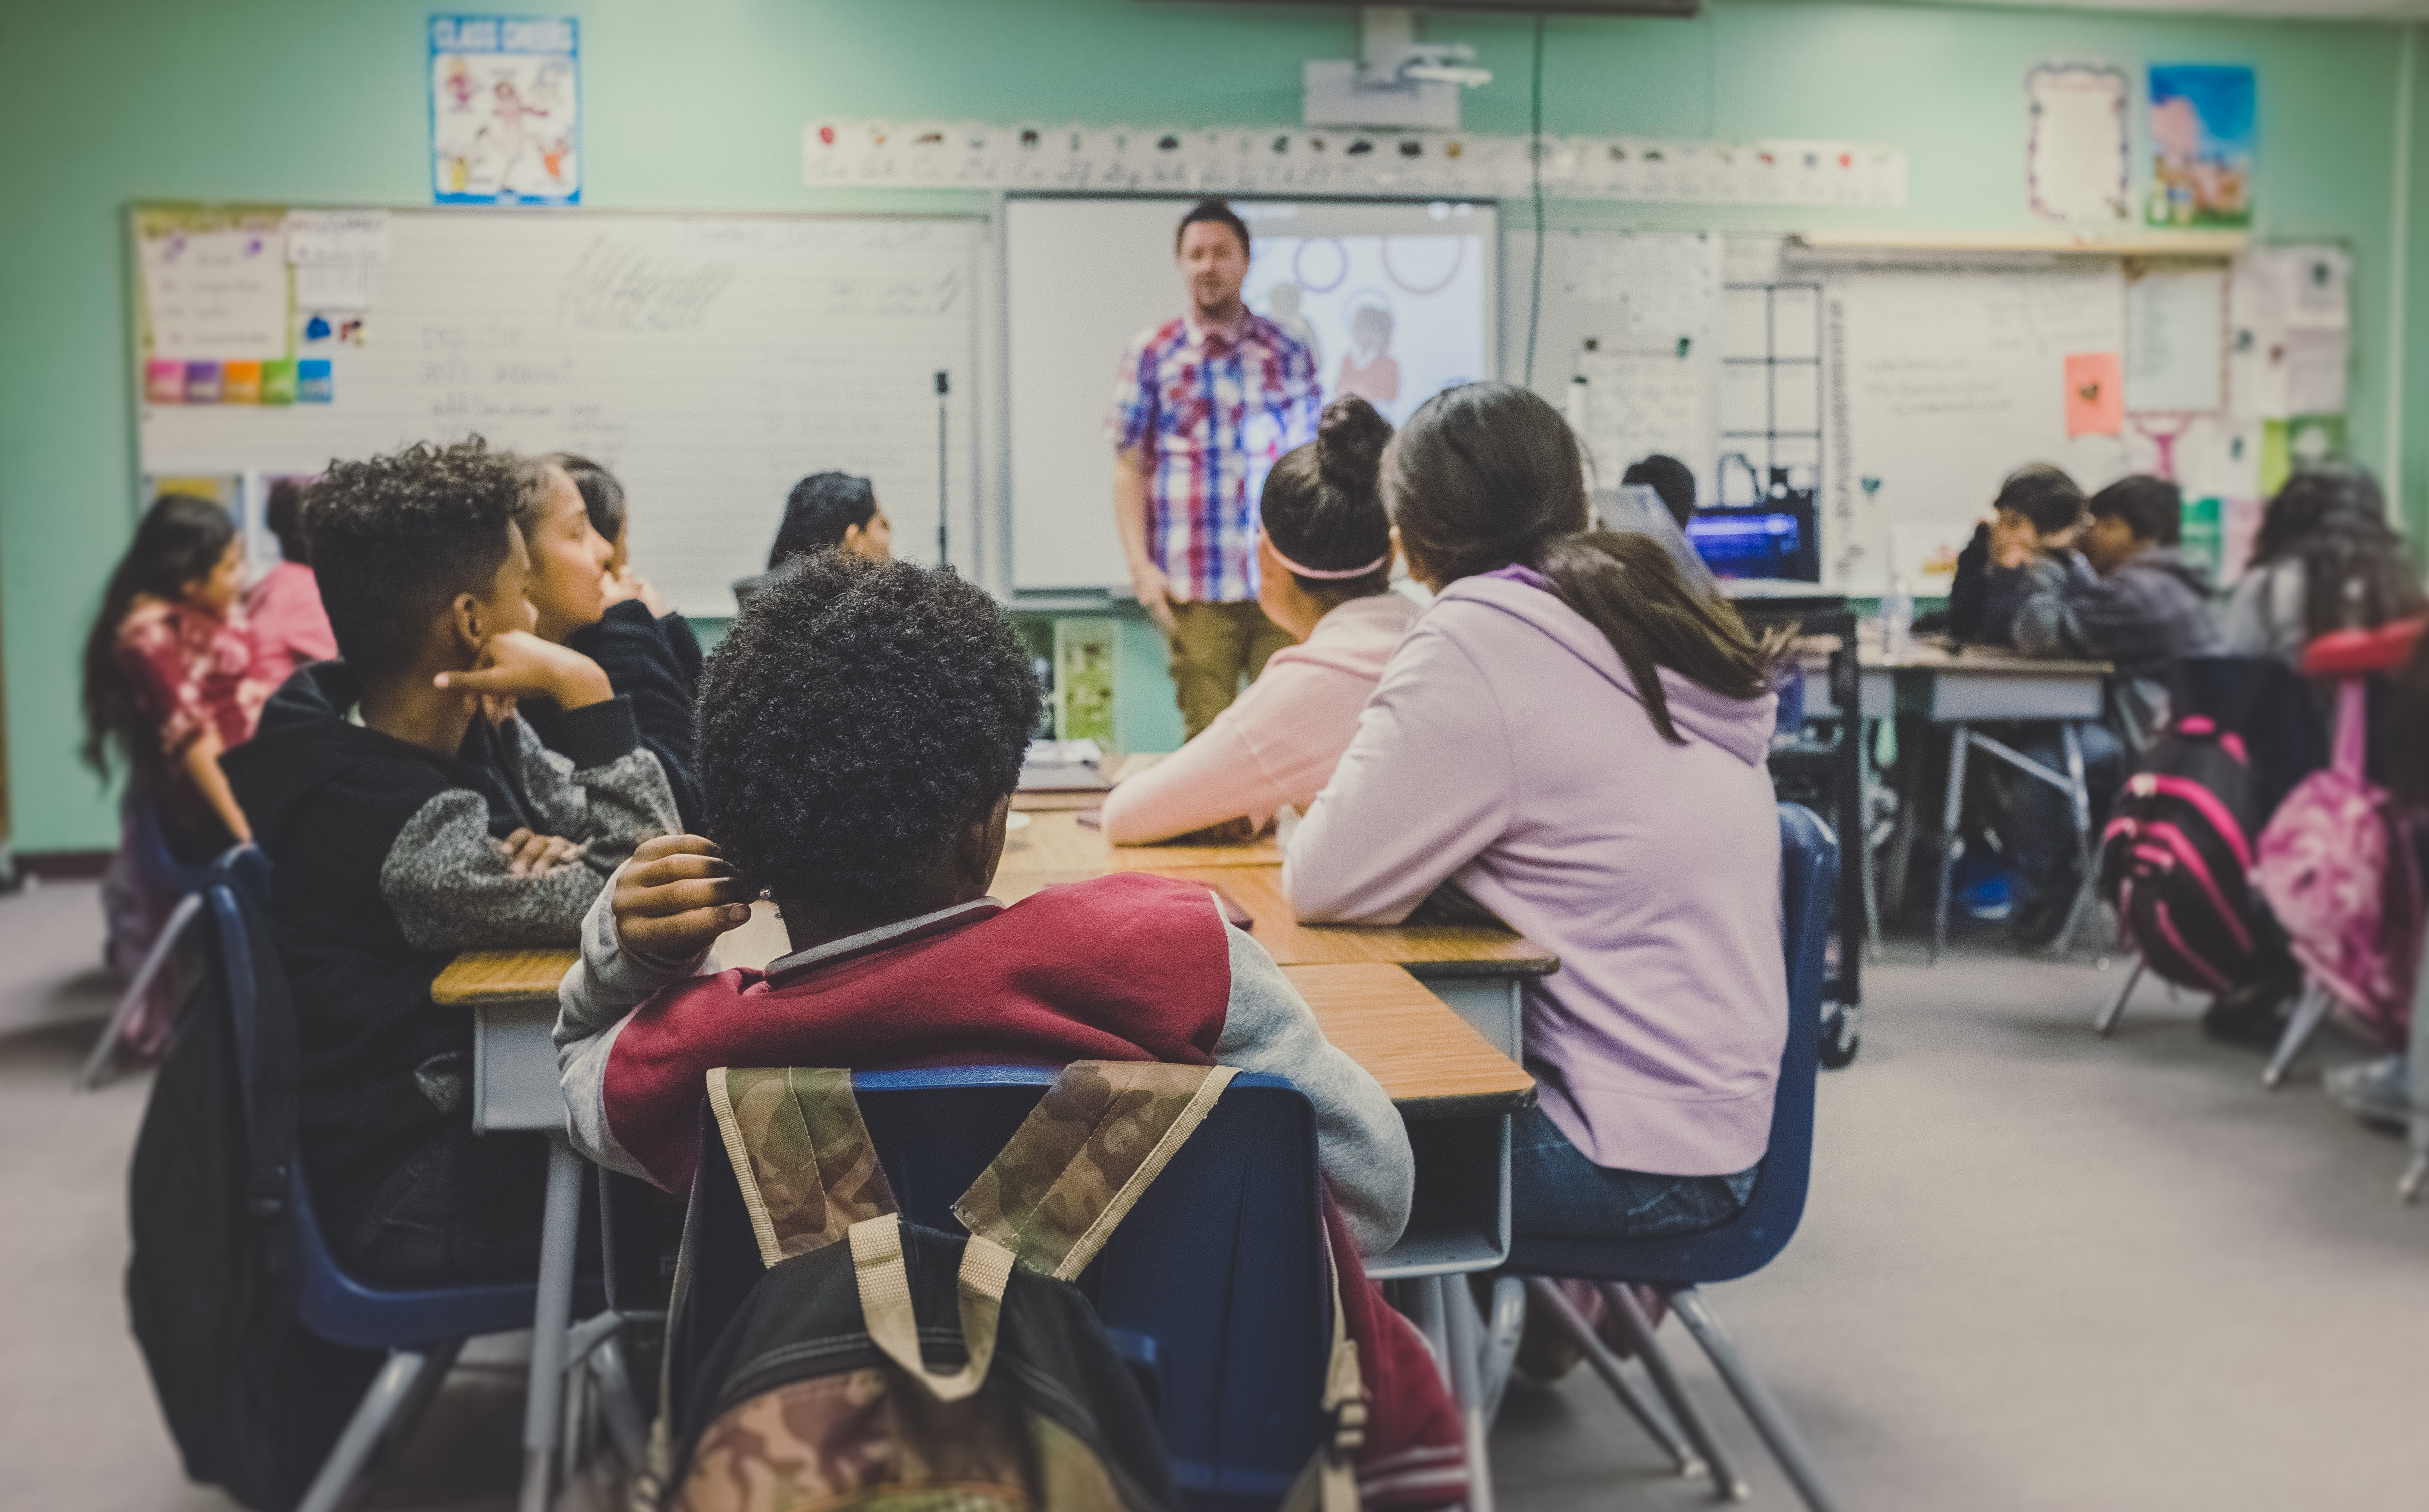 Image of cxhildren in a classroom